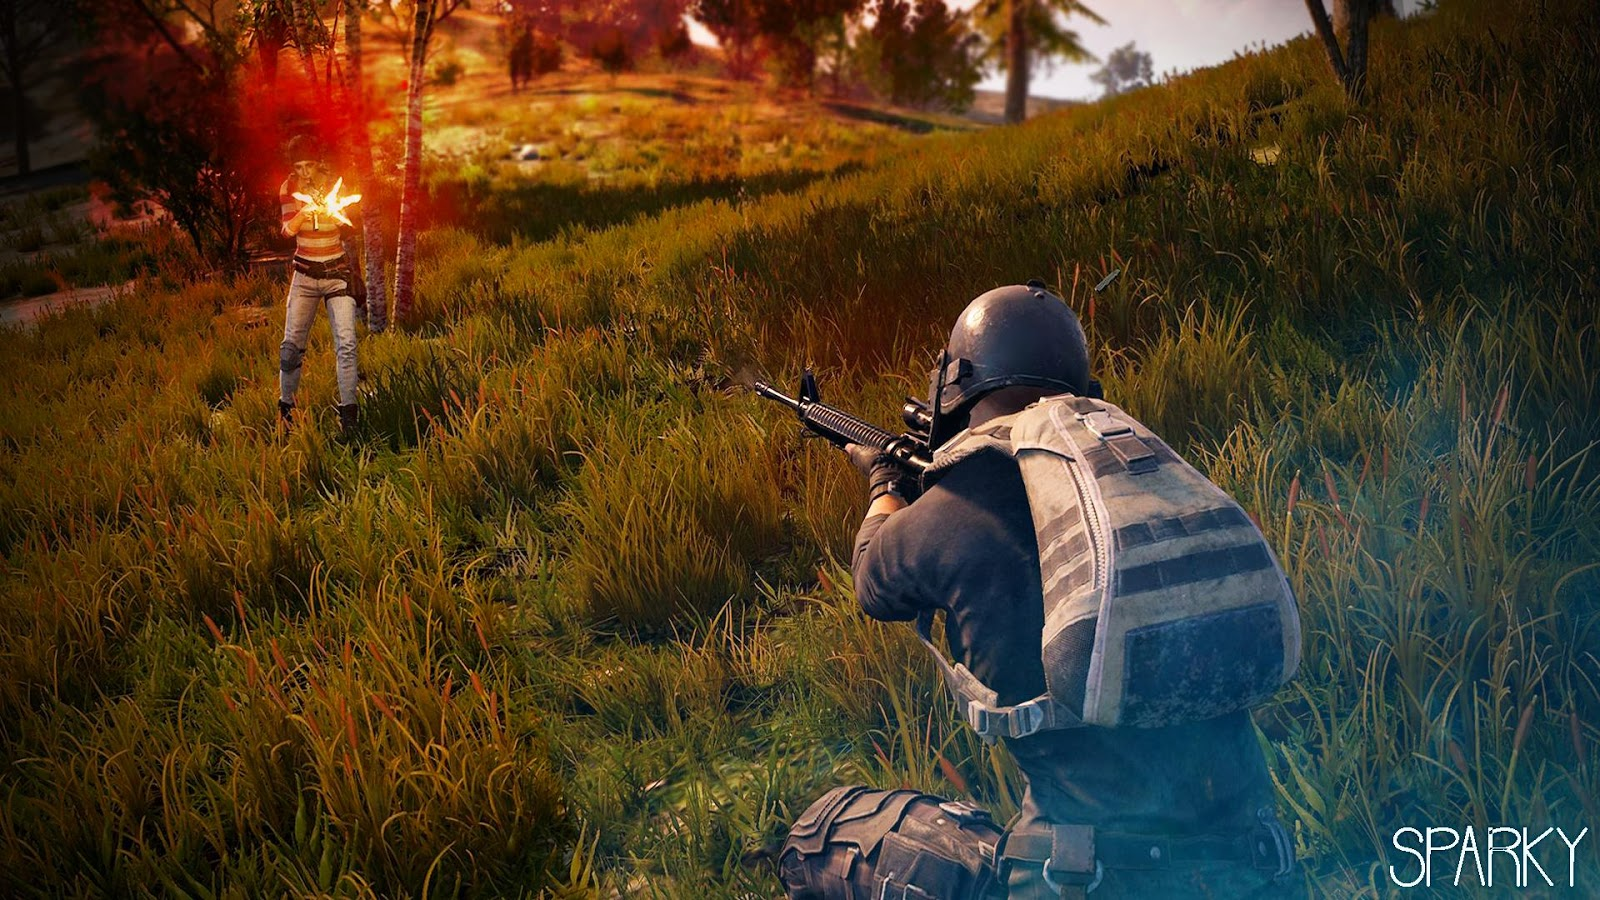 خلفيات ببجي, ببجي, pubg wallpaper, Wallpapers, Wallpapers PUBG Mobile,